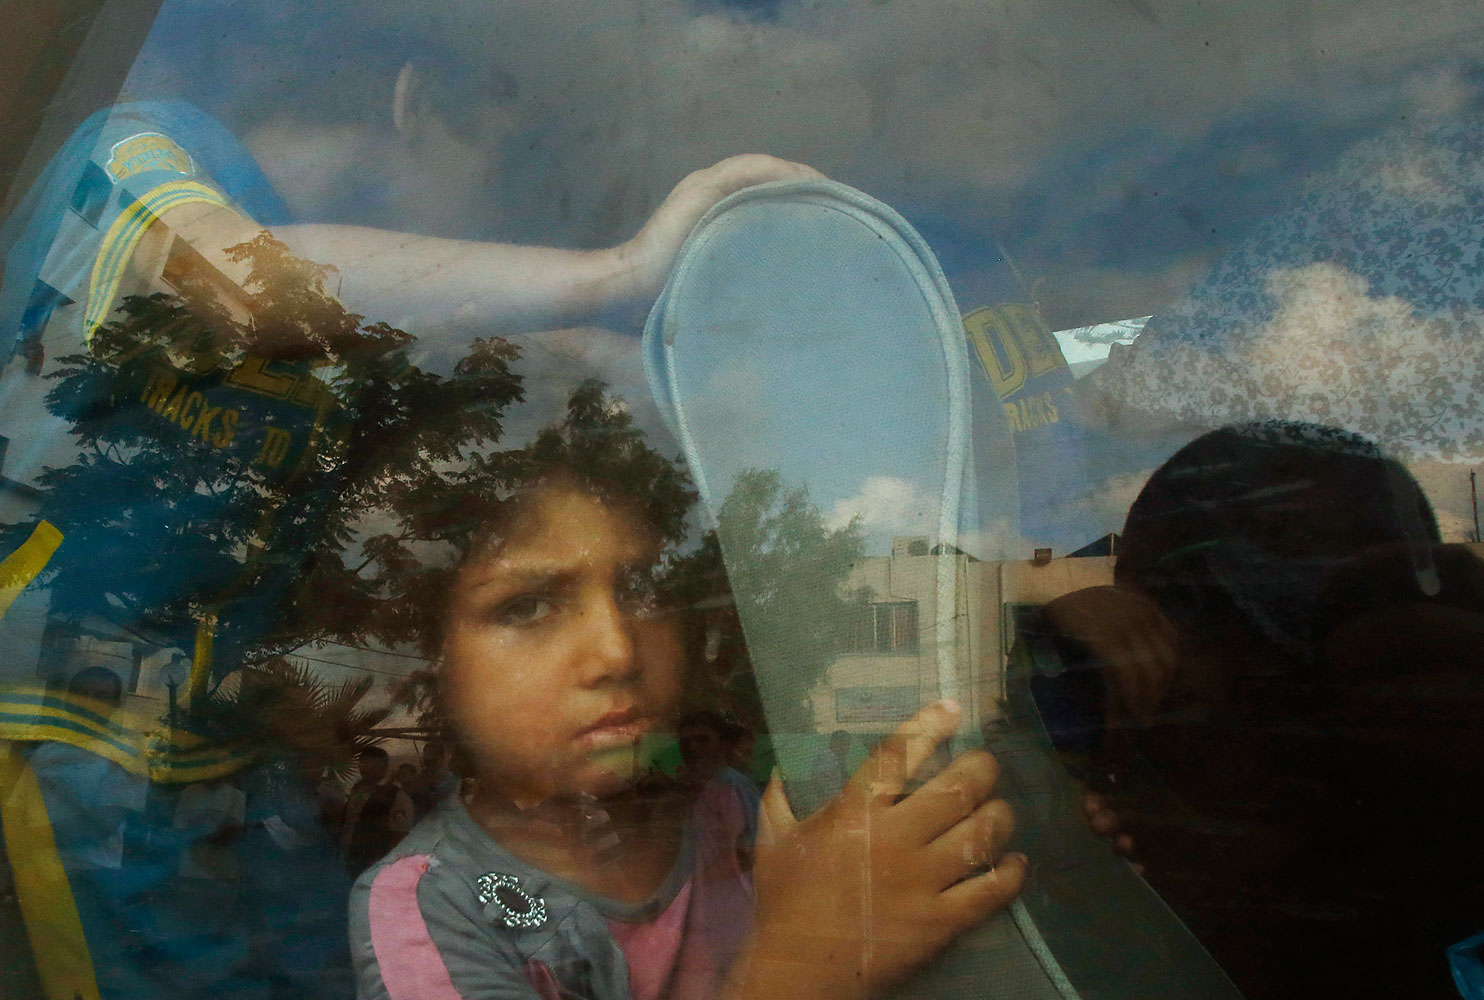 A Palestinian girl sits in a minibus after fleeing her family's house during heavy Israeli shelling, in Gaza City July 20, 2014.